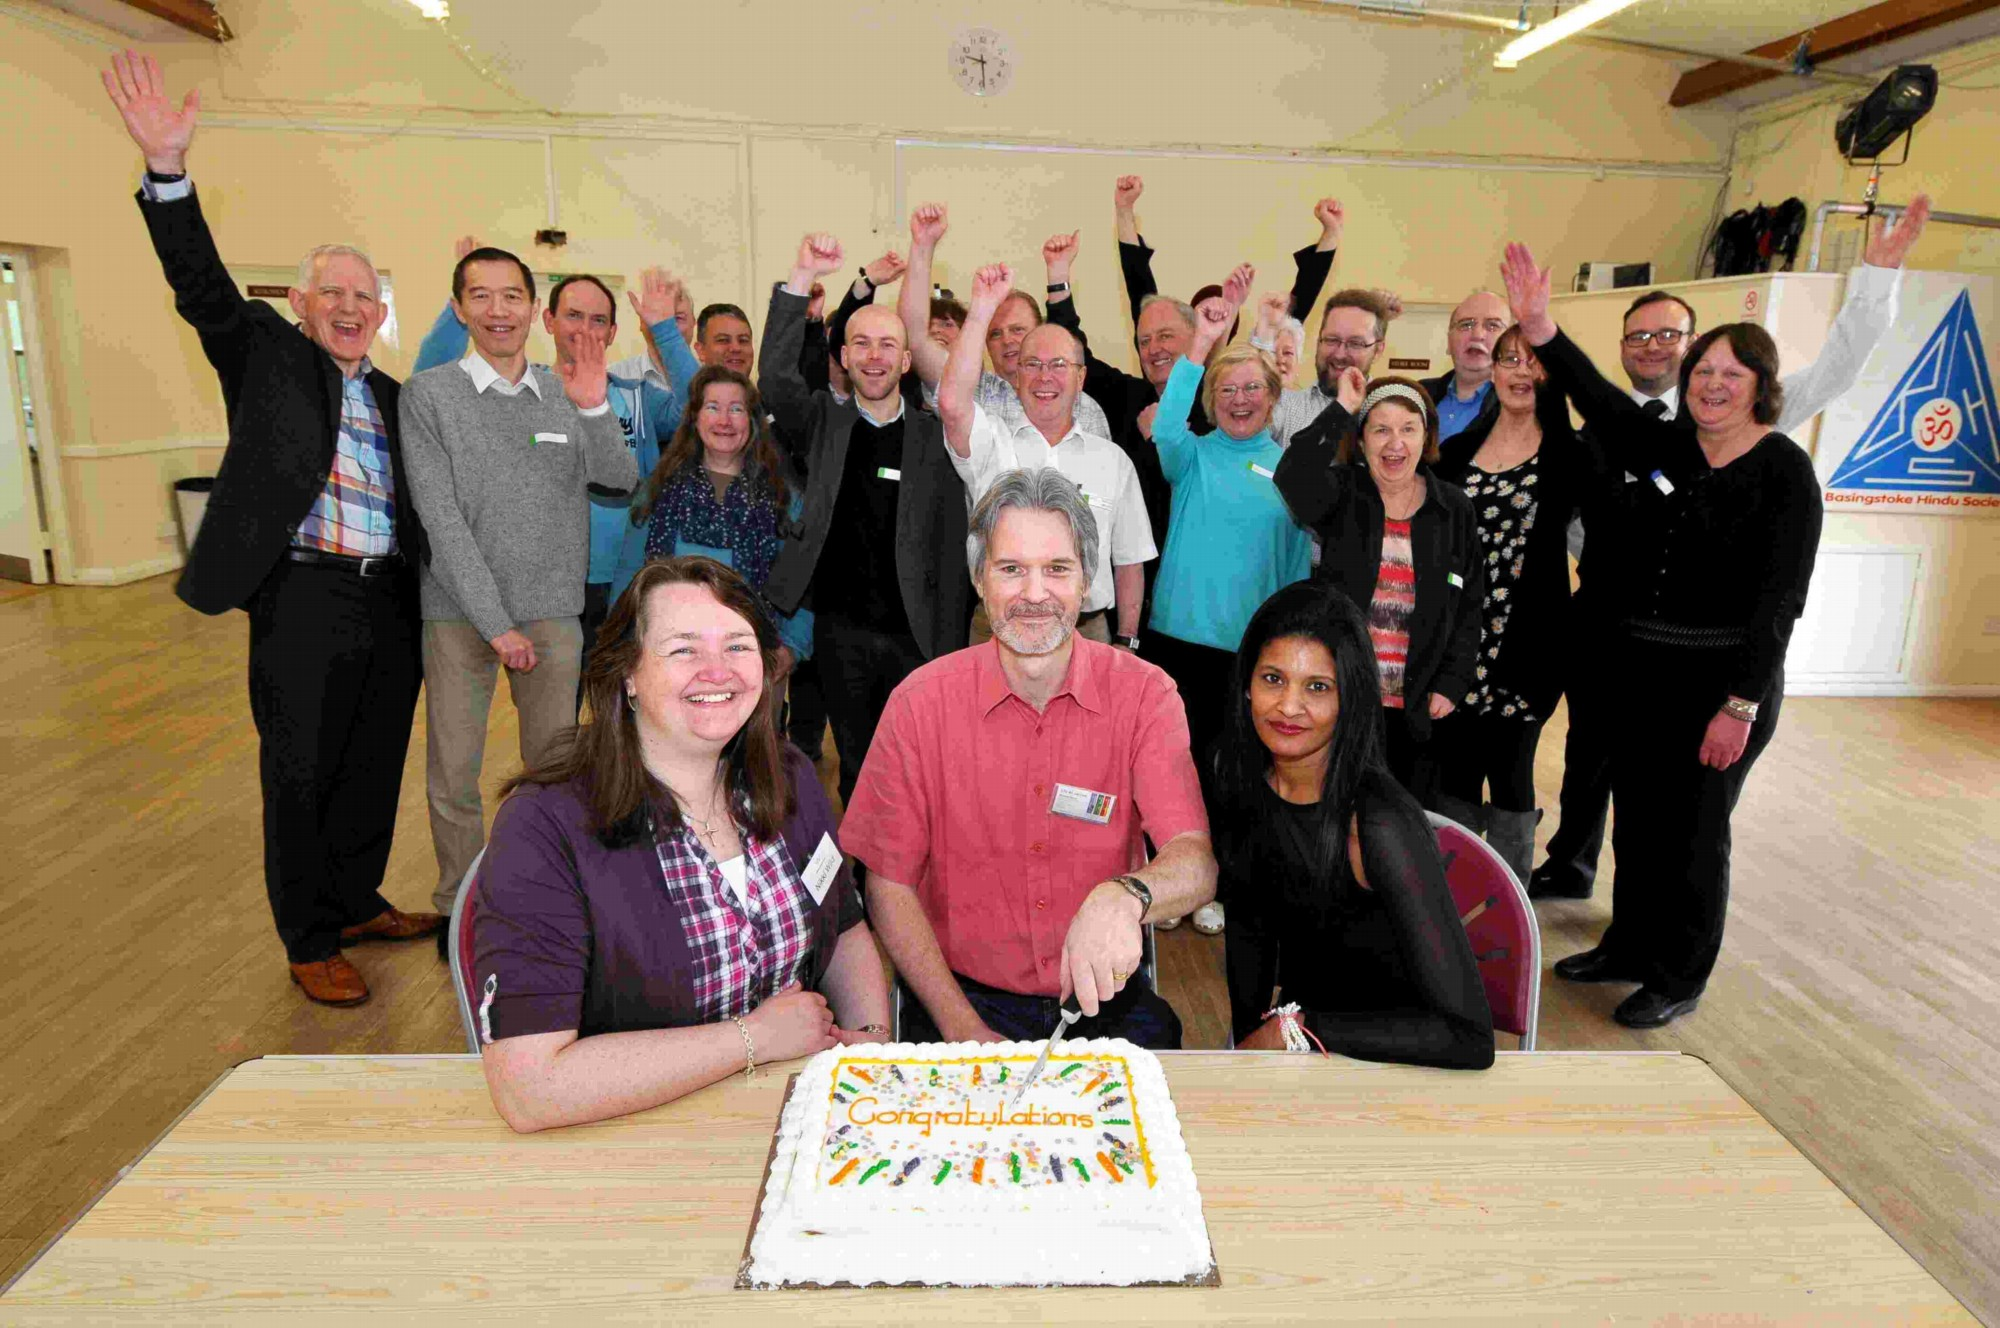 L-R: Nikki Wild, Richard Thayer and Elaine Gray celebrate the M3 Job Club's move to Carnival Hall